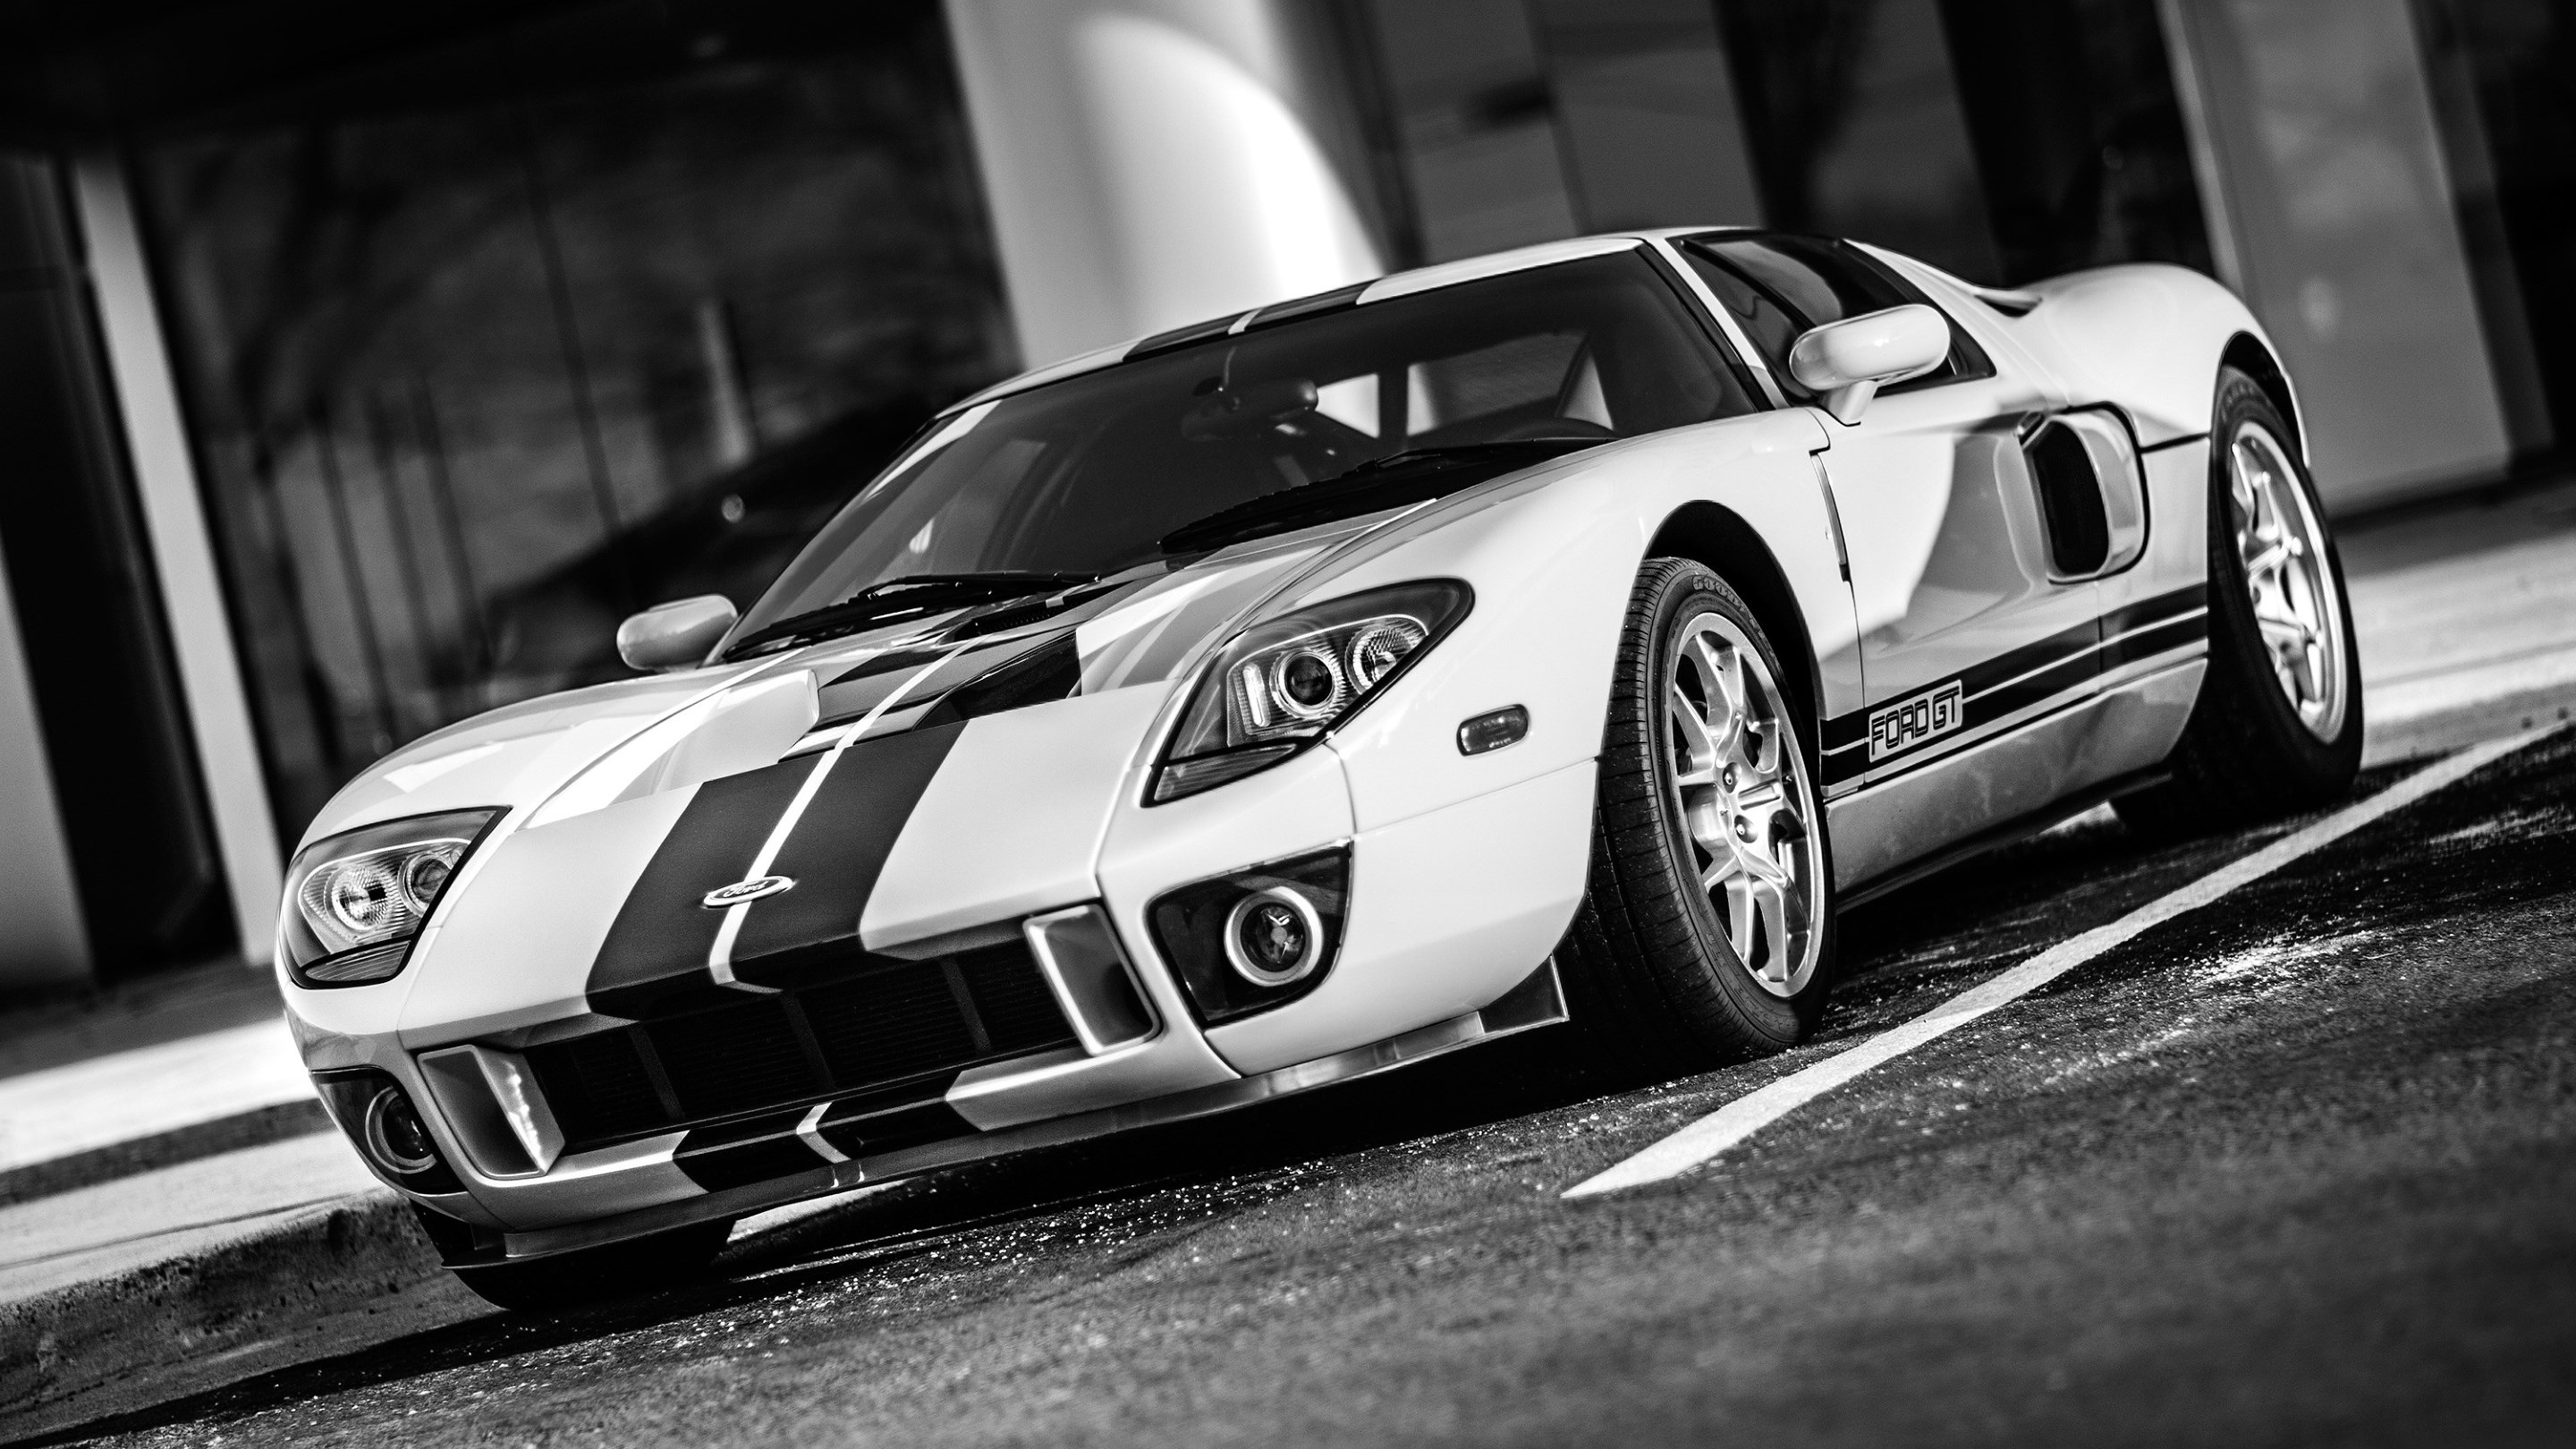 Ford GT wallpaper 2880x1620